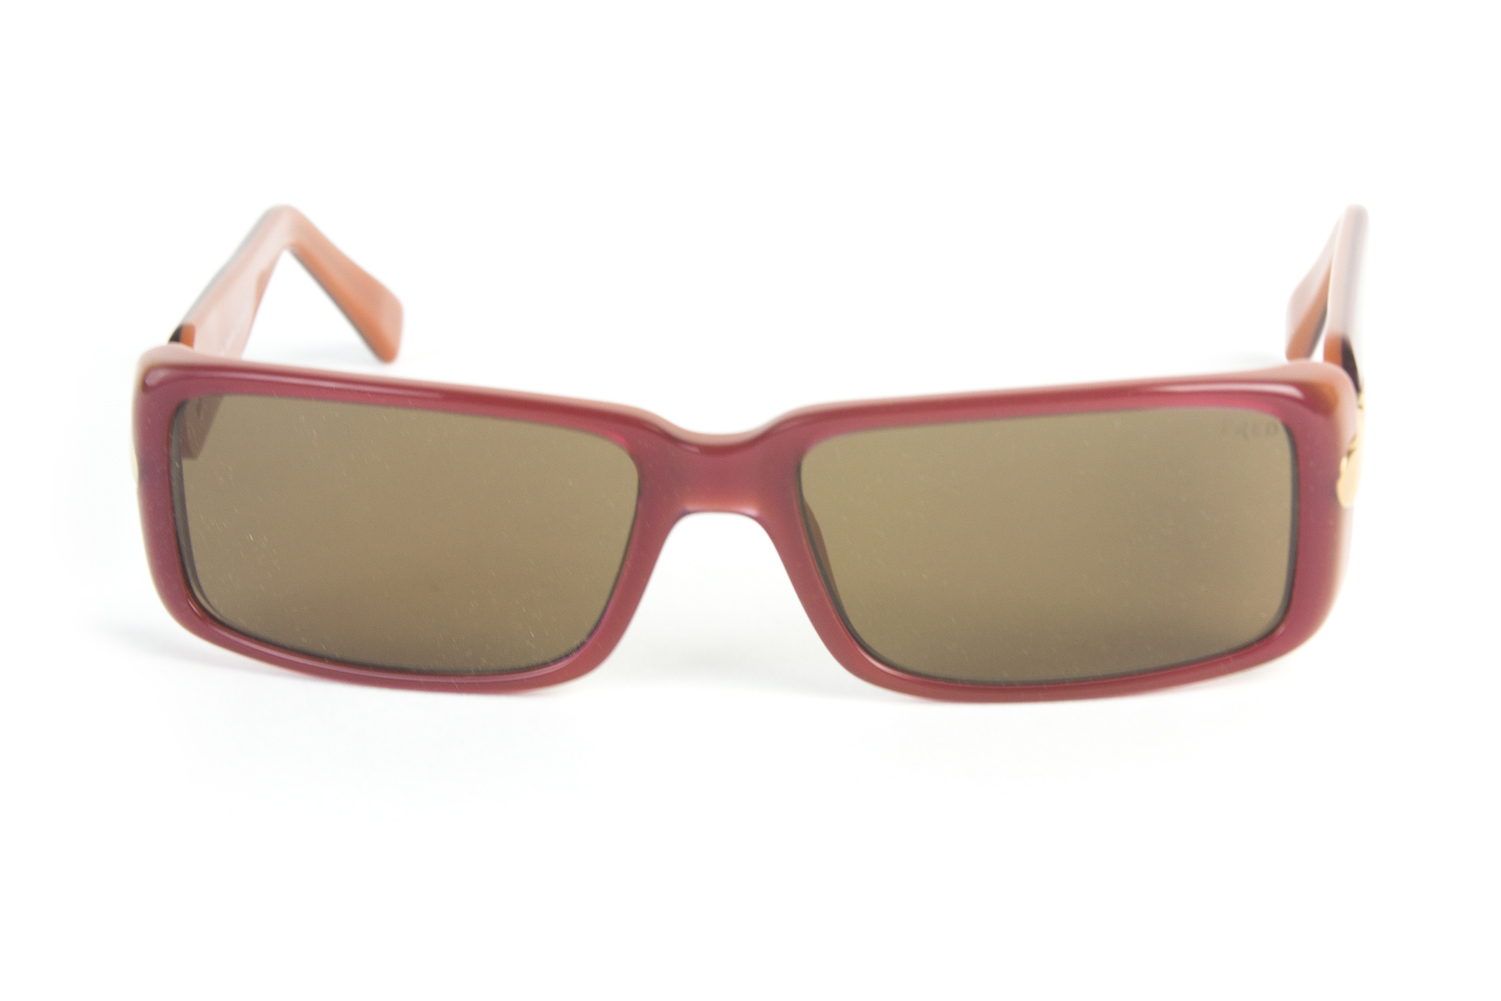 Fred-Lunettes-Marie-Galante-C2-Sunglasses-55mm-NEW thumbnail 6